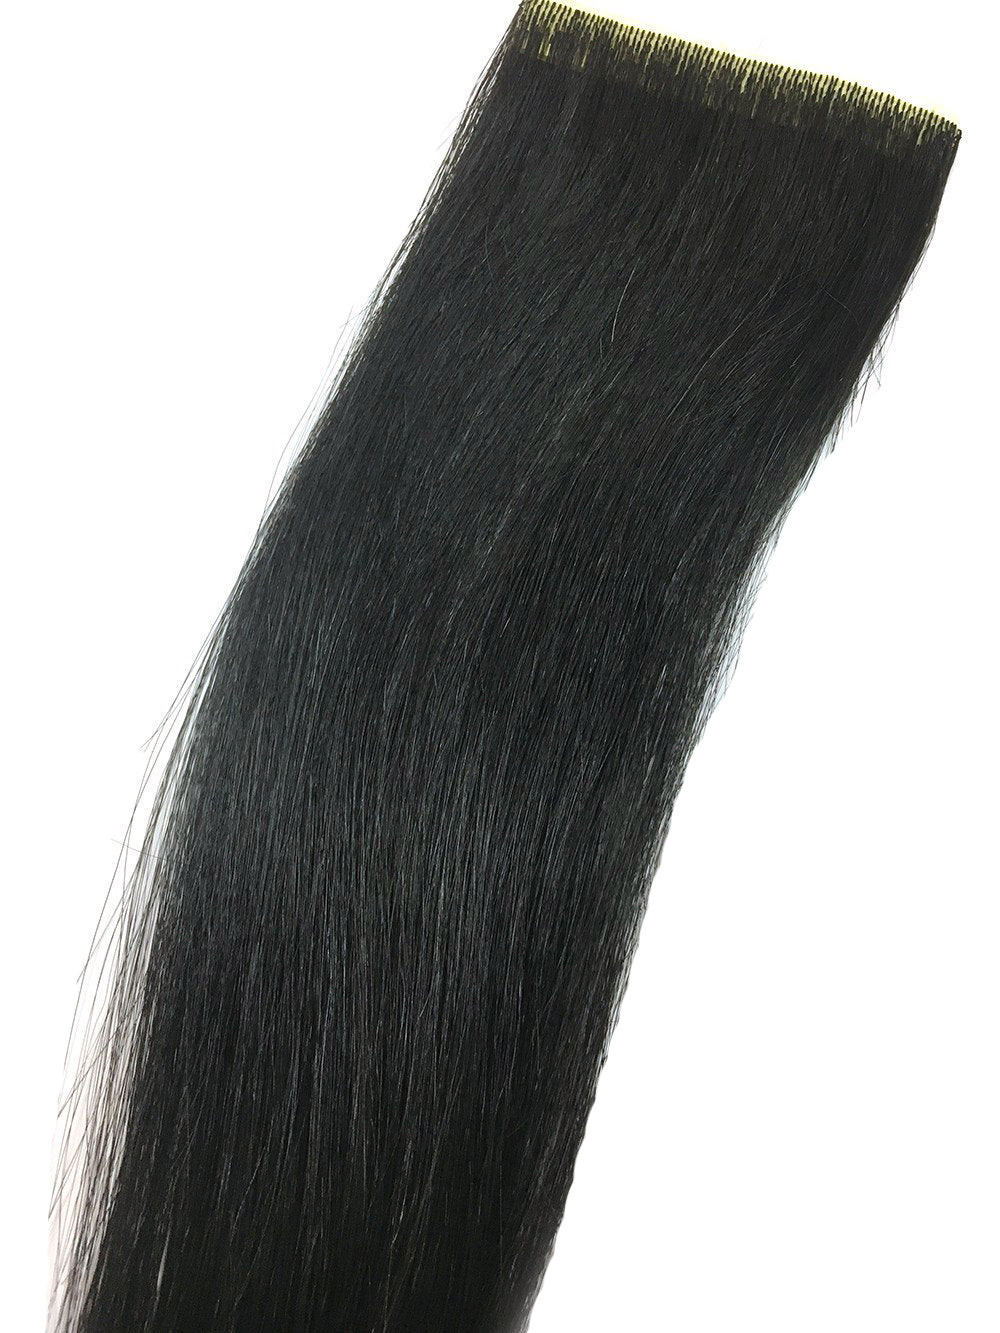 "6 Pcs Skin Weft Yaki Straight Human Hair Extensions 18"" - Hairesthetic"